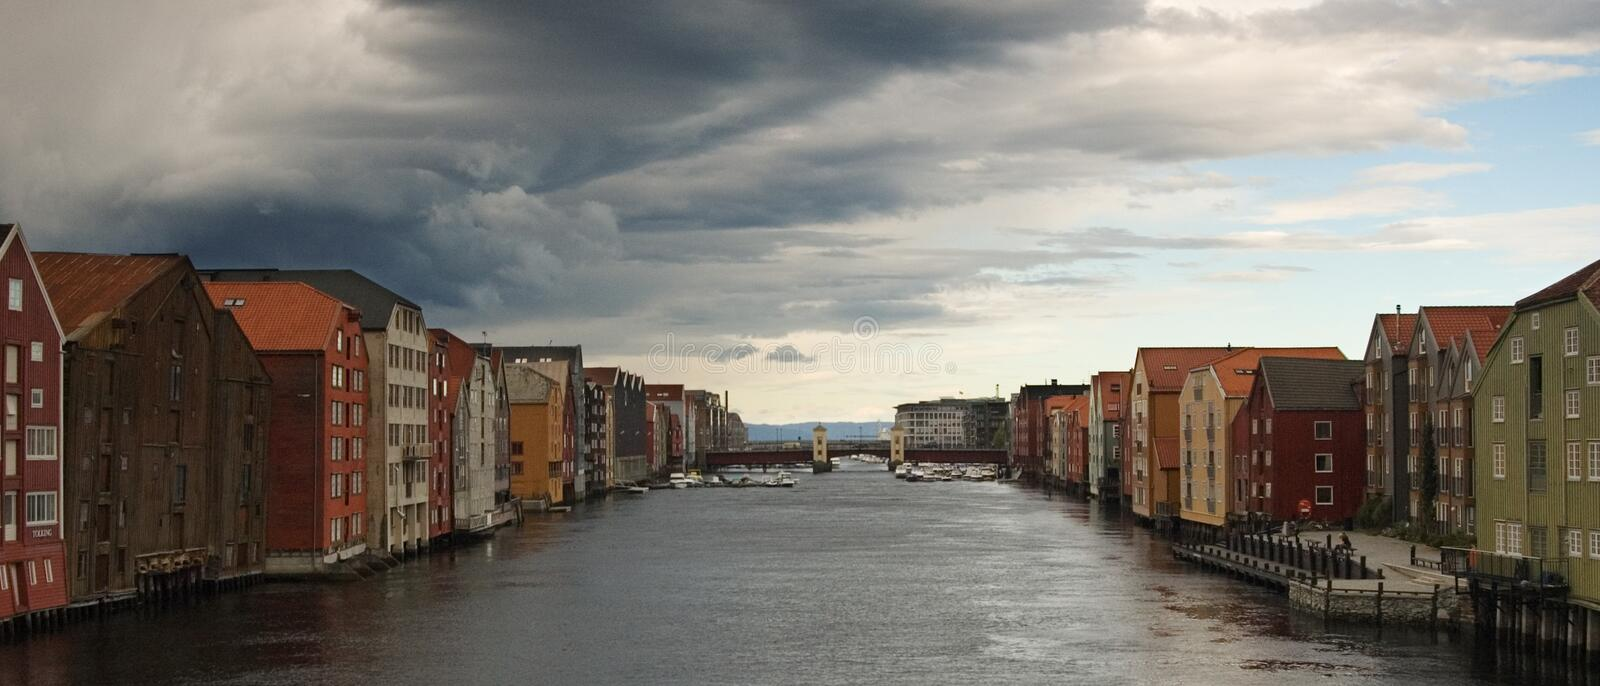 Trondheim-Nidelva. Trondheim the historical city is situated on Nidelva river in Norway stock photos